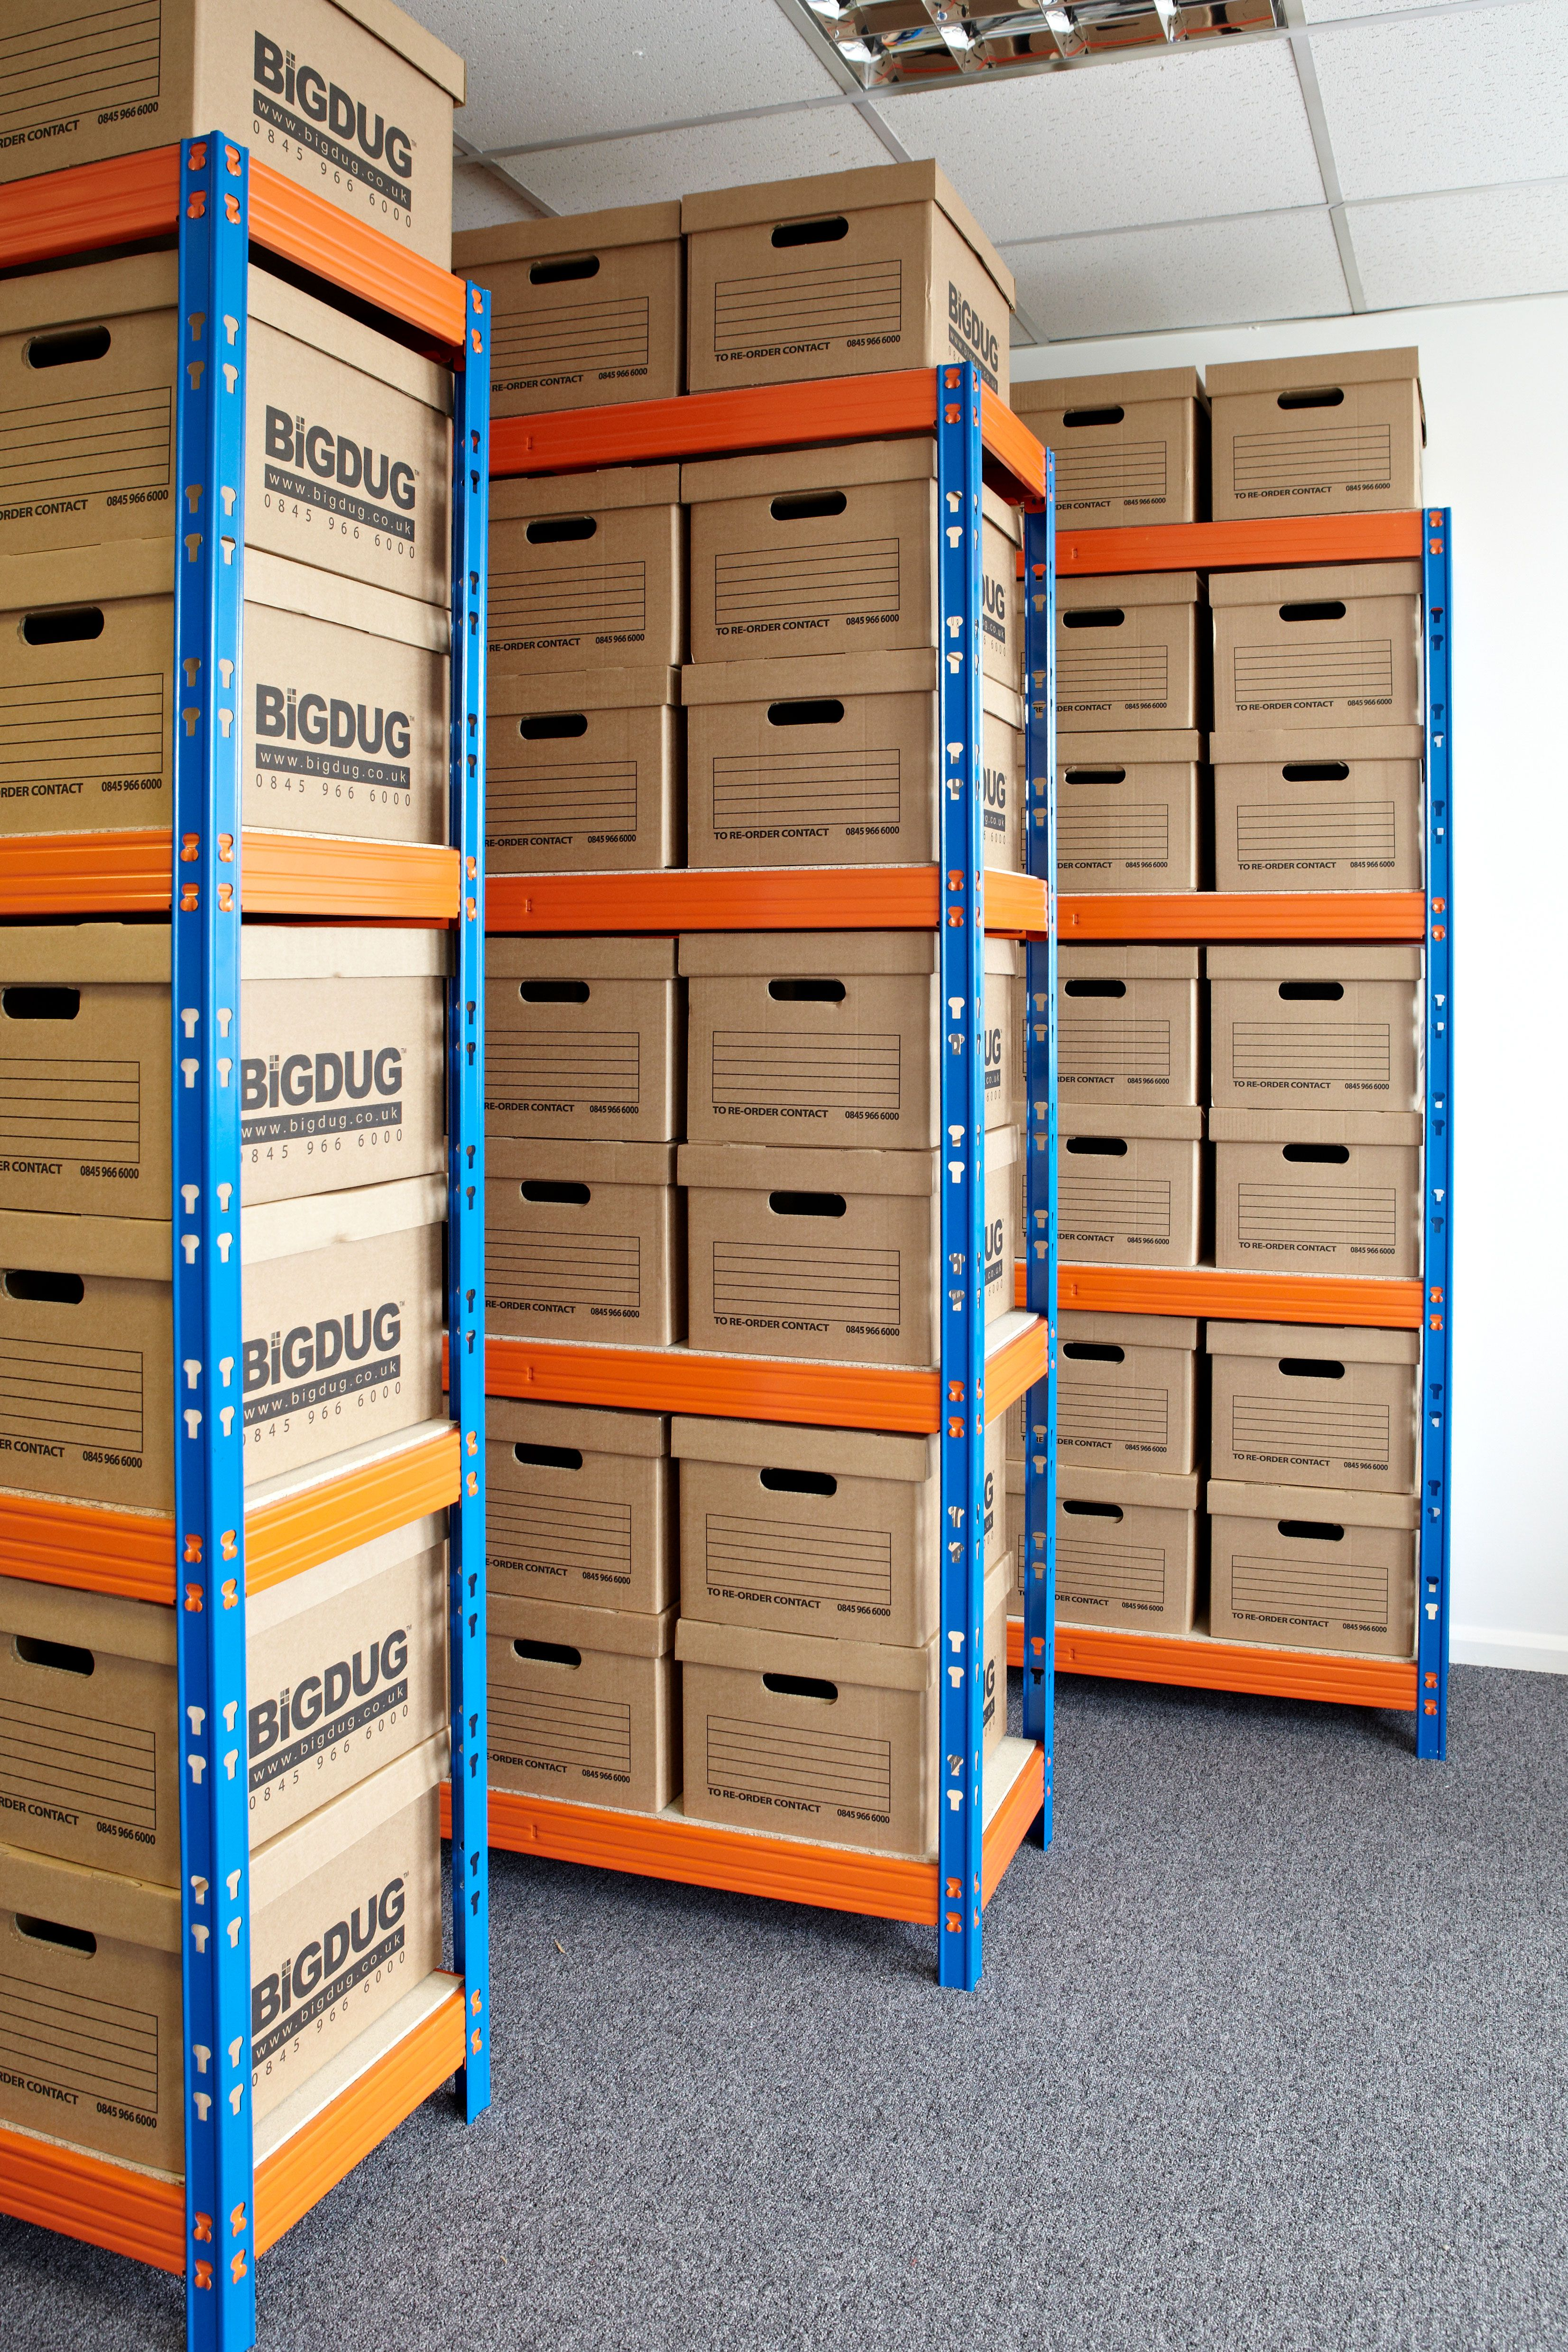 Archive Storage Racking With Heavy Duty Boxes & Archive Storage Racking With Heavy Duty Boxes | Stockroom Storage ...